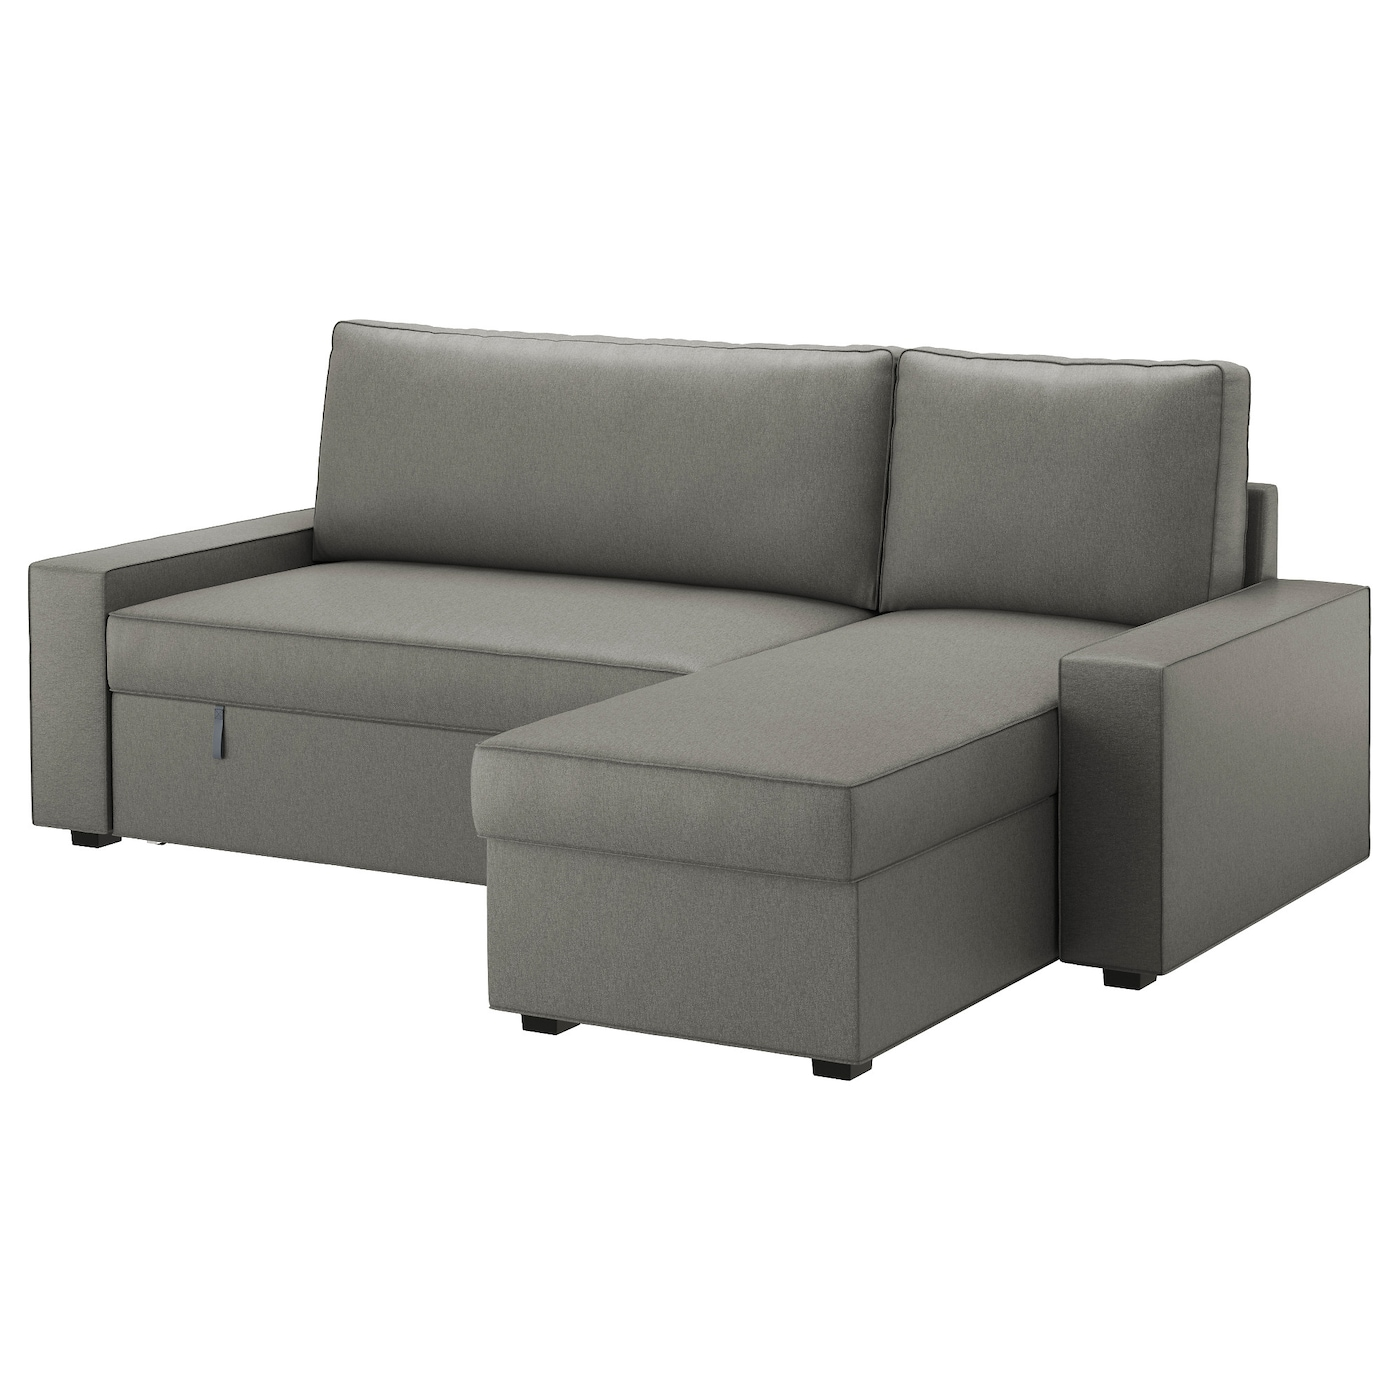 Sofa beds futons ikea for Chaise longue style sofa